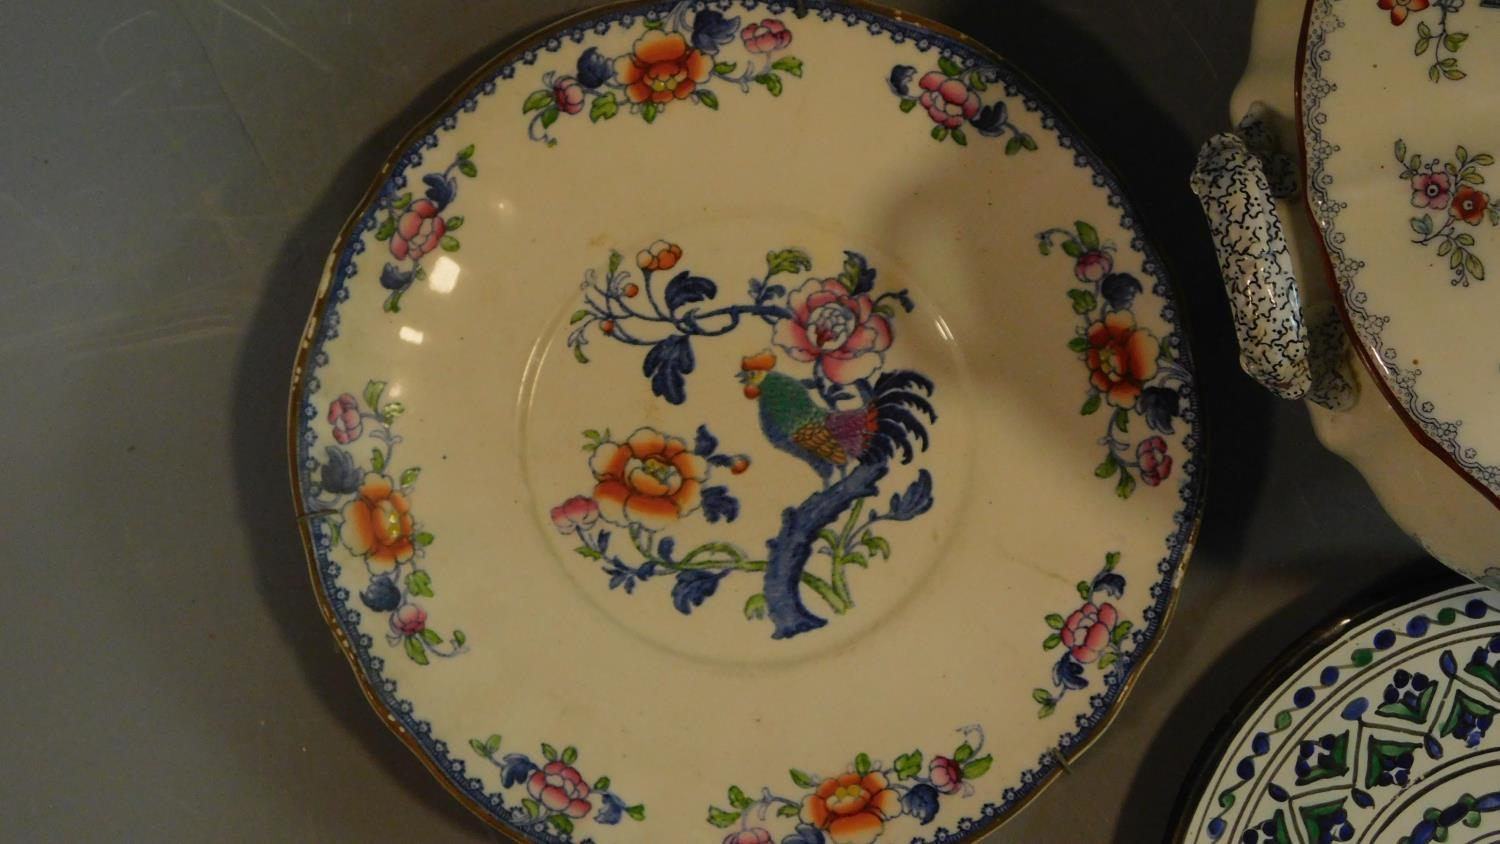 A 19th century Staffordshire ironstone tureen and cover (associated ladle) and various other - Image 7 of 18